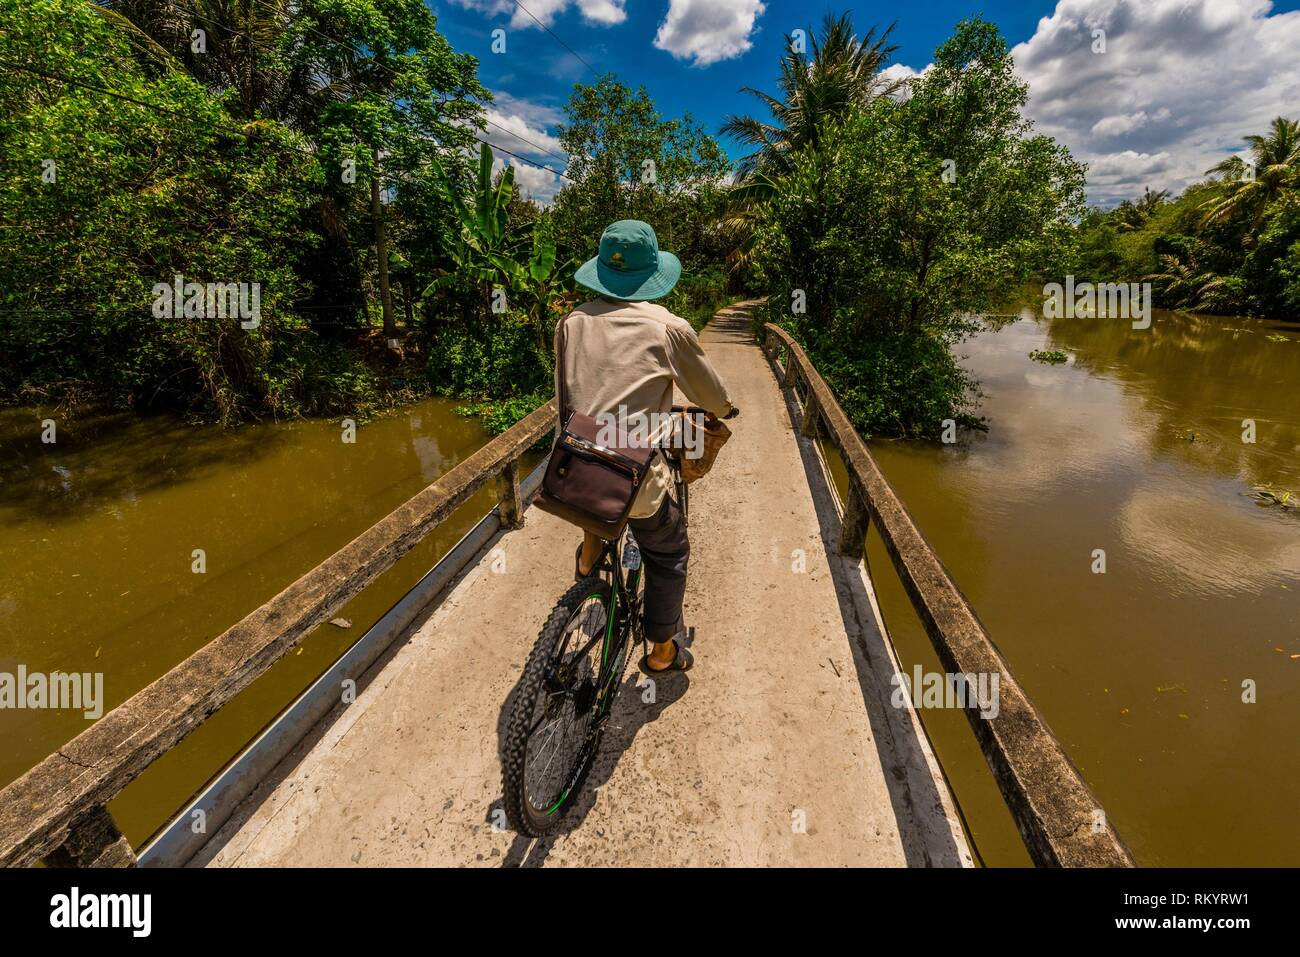 A man bicycling along the backwaters, Cai Lay, Mekong Delta, Vietnam. - Stock Image